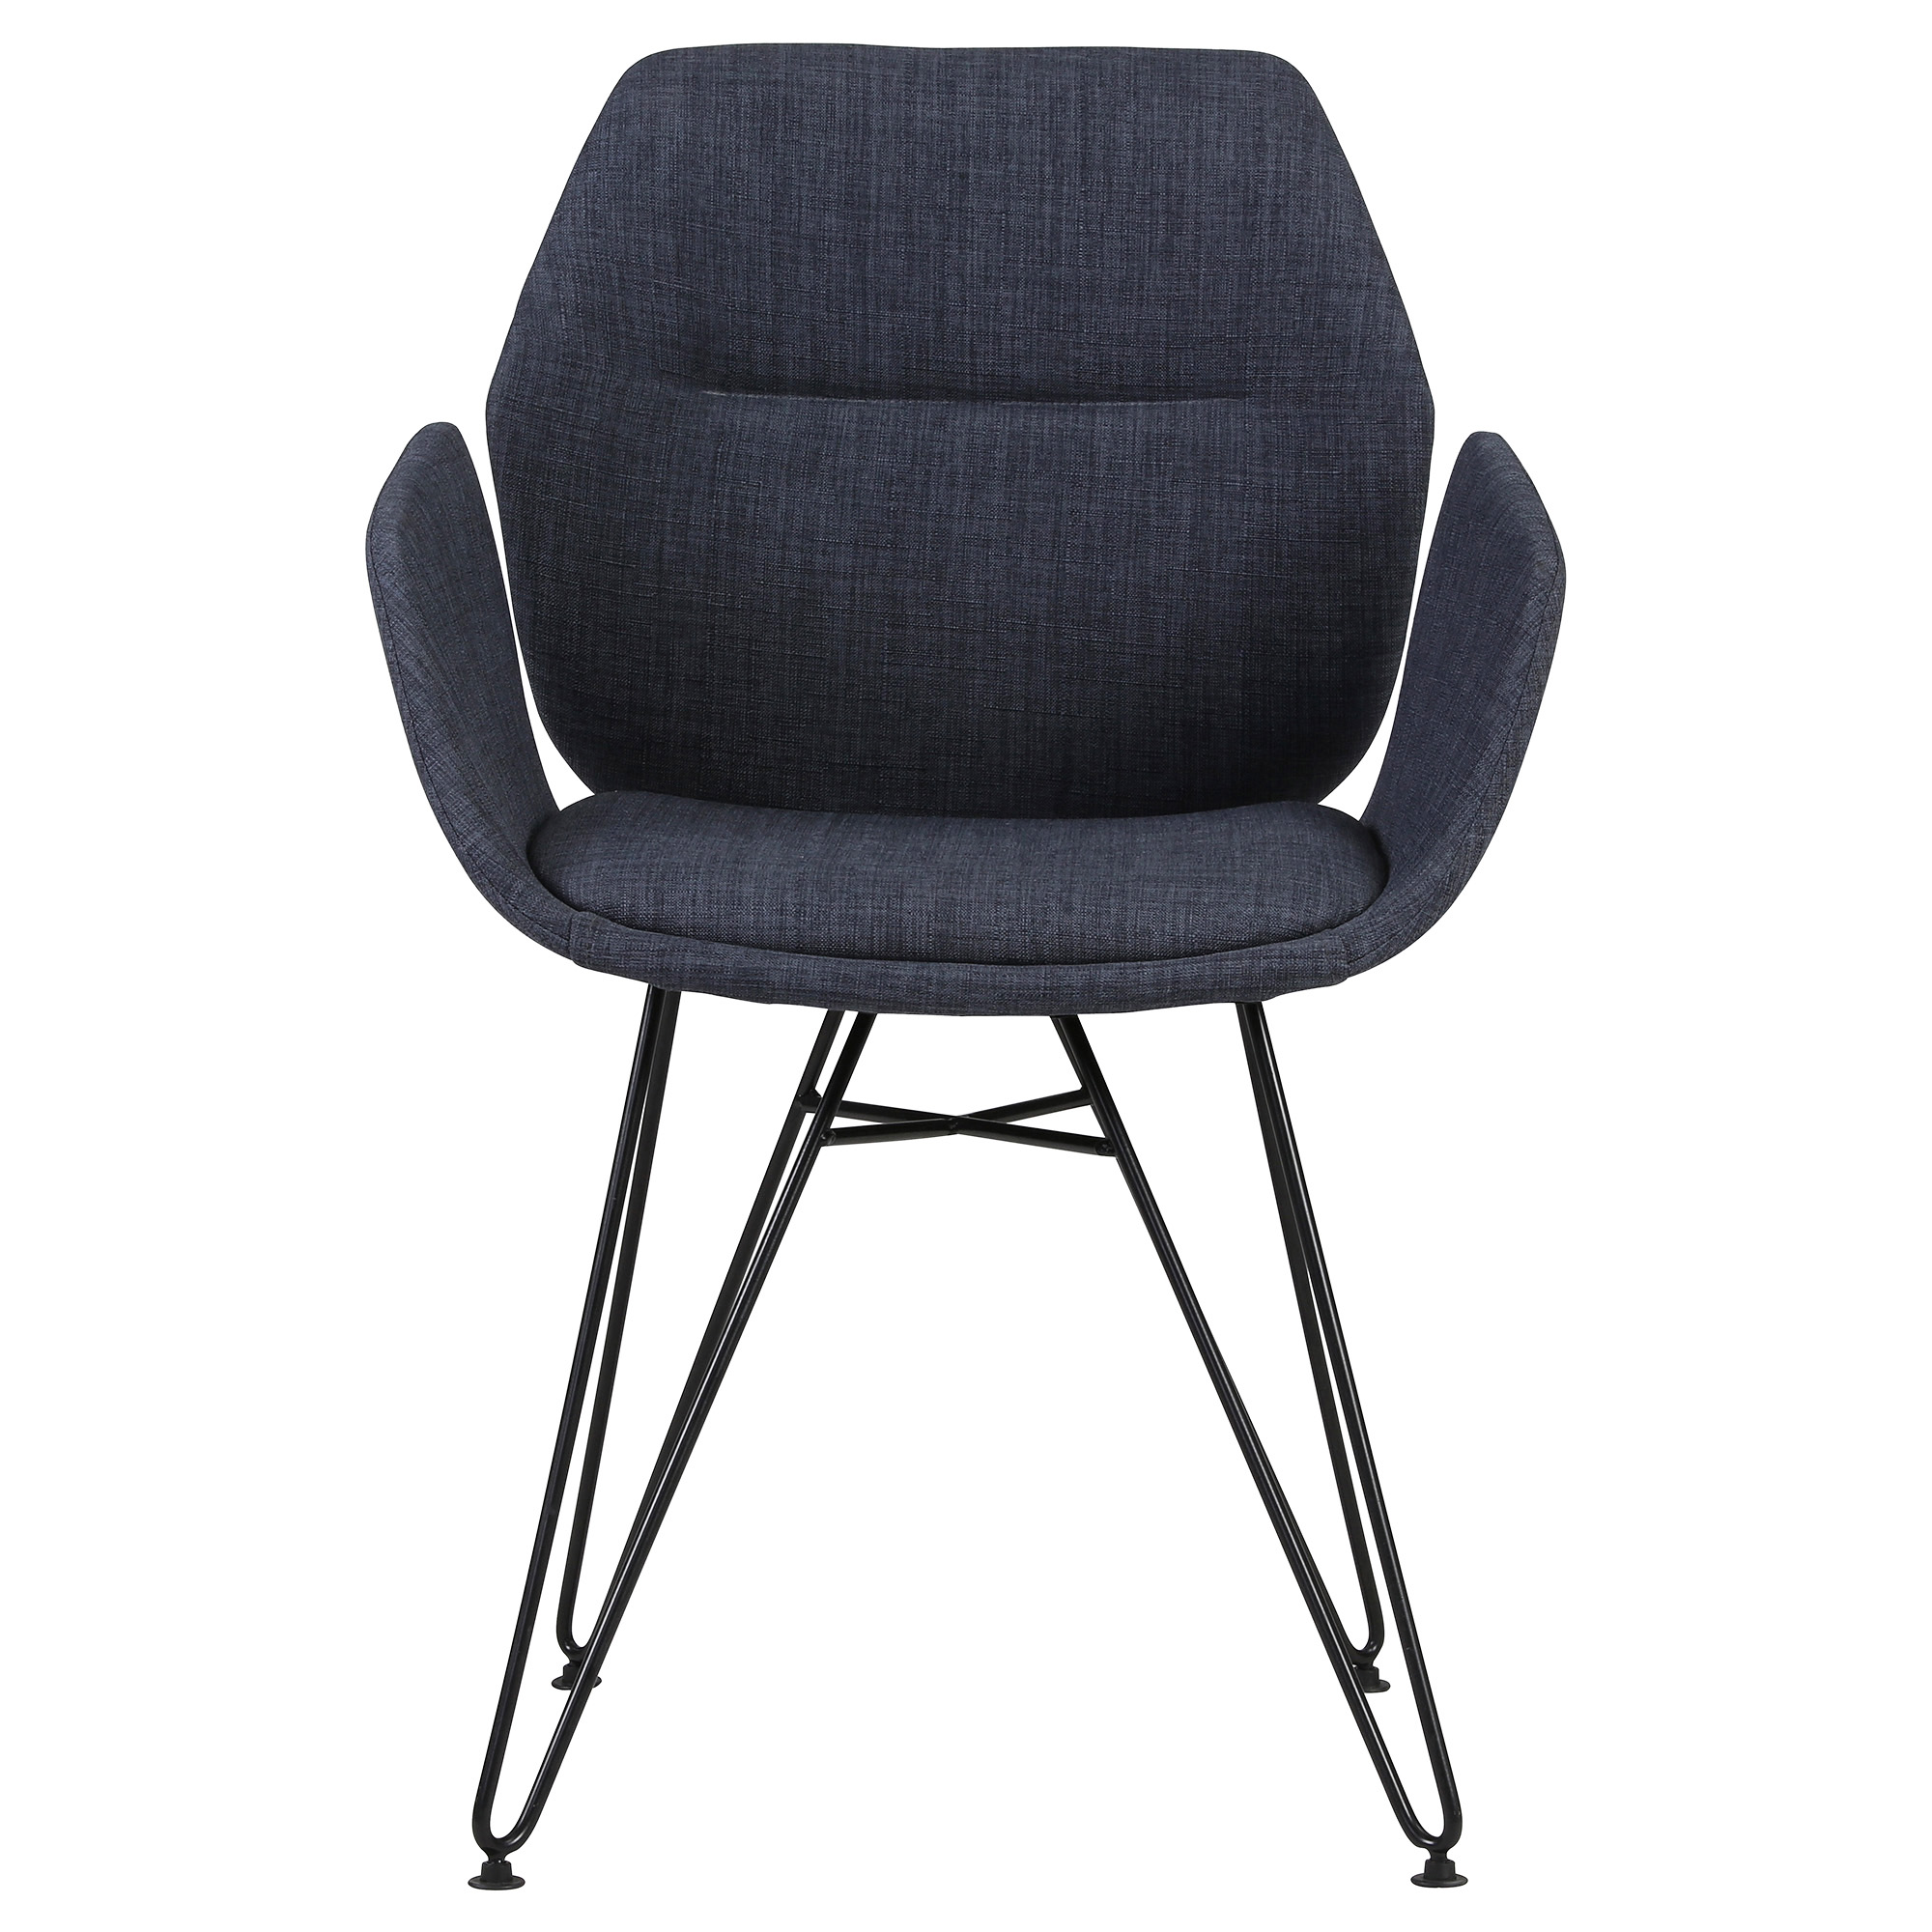 ZANE-ACCENT CHAIR-BLUE, 841173030889, Accent Chairs by Midha Furniture to Brampton, Mississauga, Etobicoke, Toronto, Scraborough, Caledon, Oakville, Markham, Ajax, Pickering, Oshawa, Richmondhill, Kitchener, Hamilton and GTA area